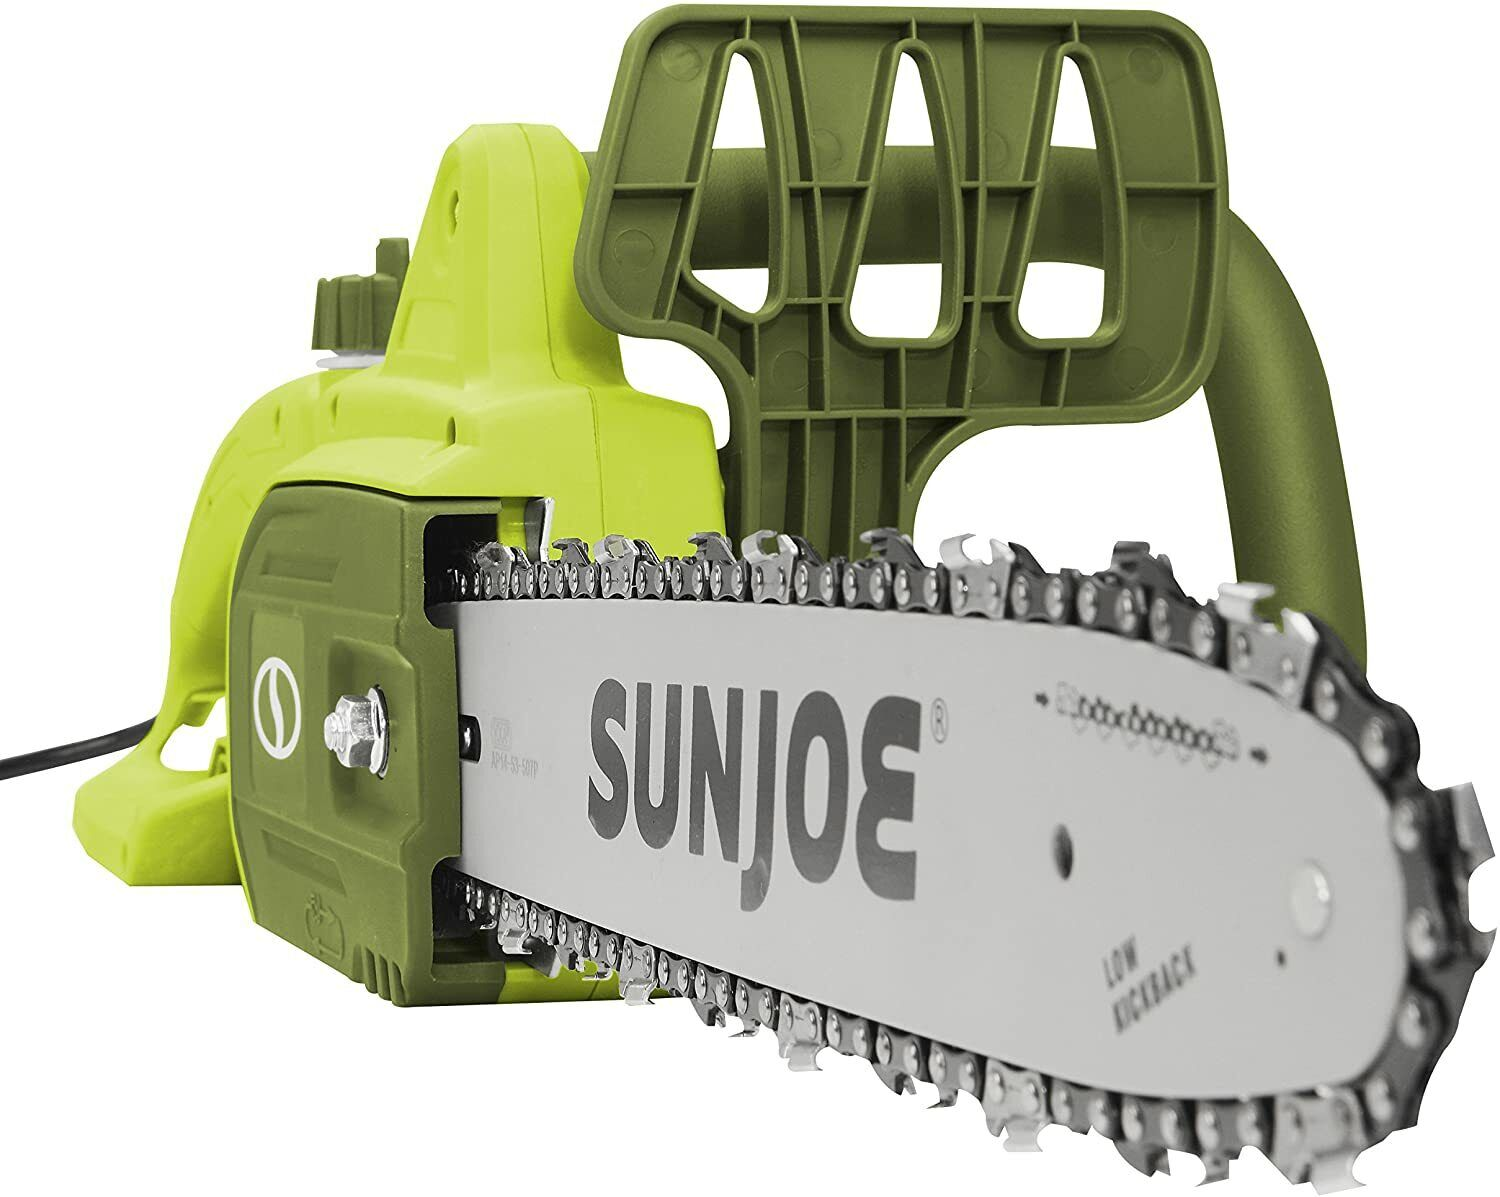 Chain Saw Green Electric Pruner Tree Branch Limb Trimmer Cut